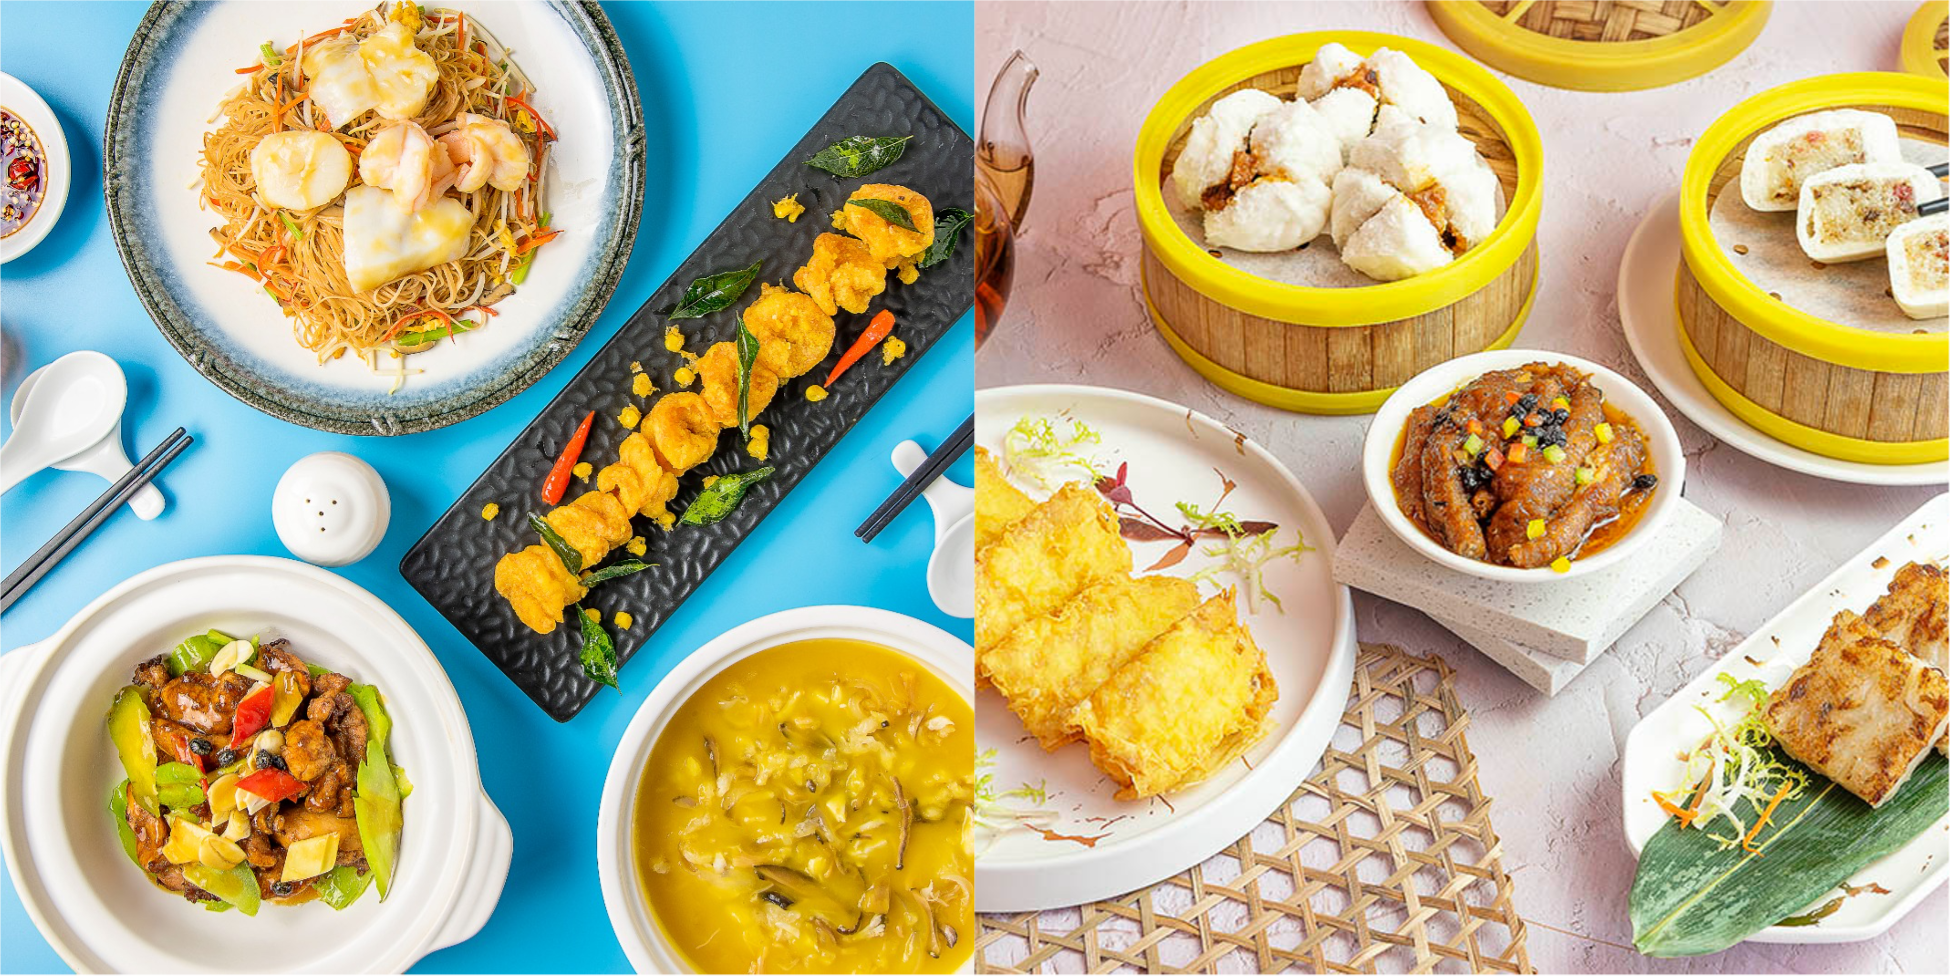 Tien Court October Specials: 3 Dim Sum for Just $12 & Set Menus For Two!